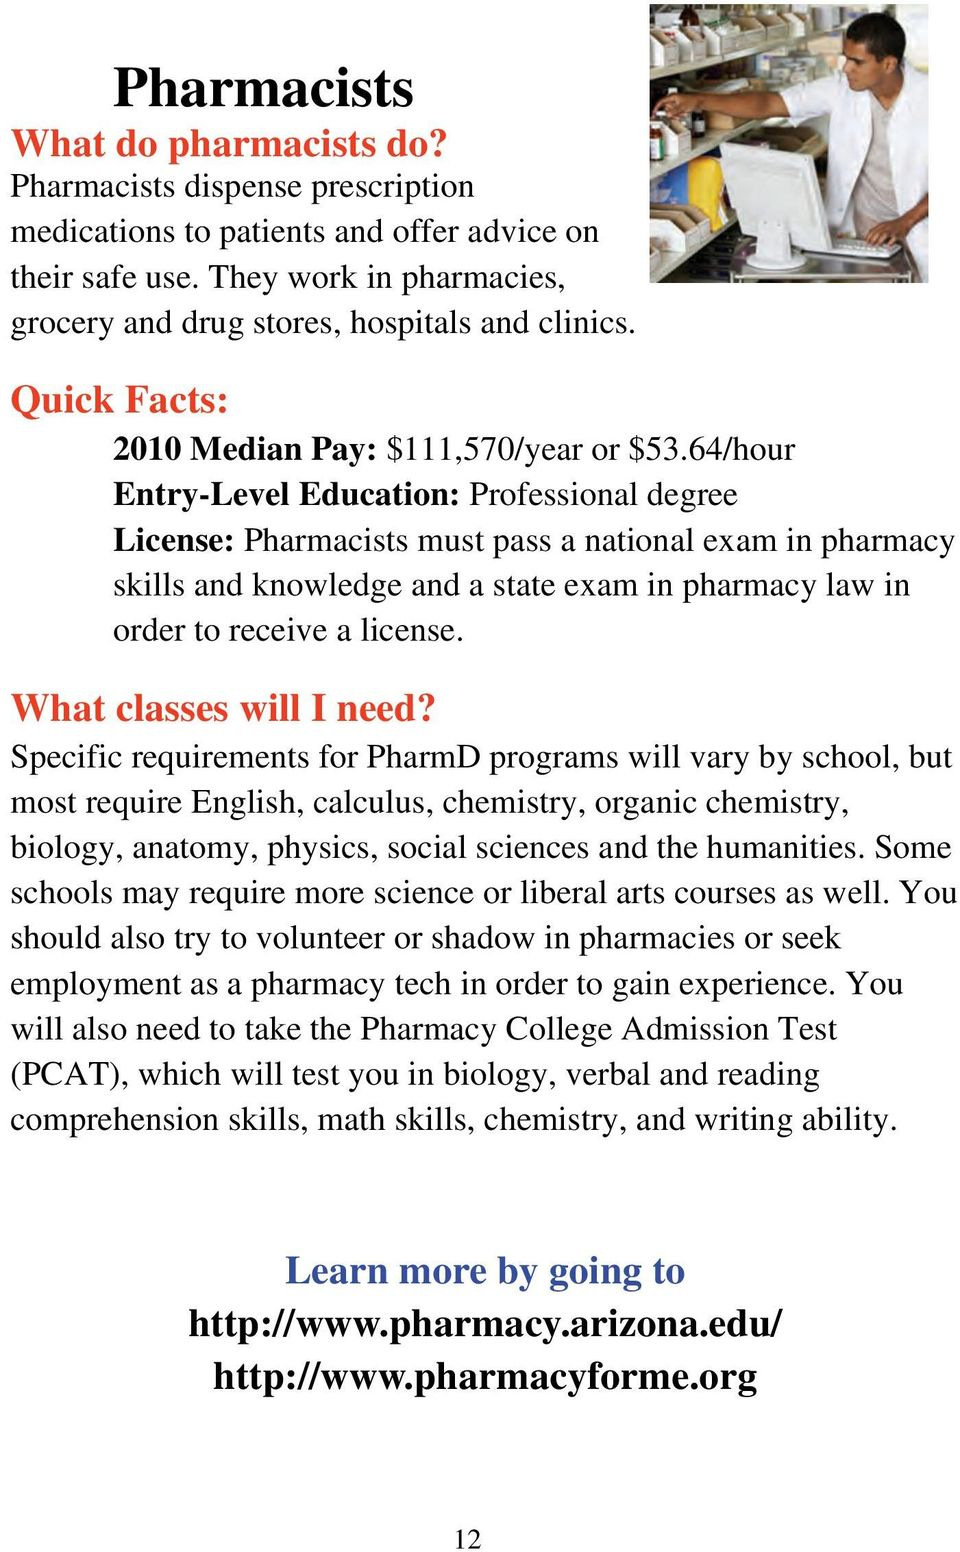 64/hour Entry-Level Education: Professional degree License: Pharmacists must pass a national exam in pharmacy skills and knowledge and a state exam in pharmacy law in order to receive a license.